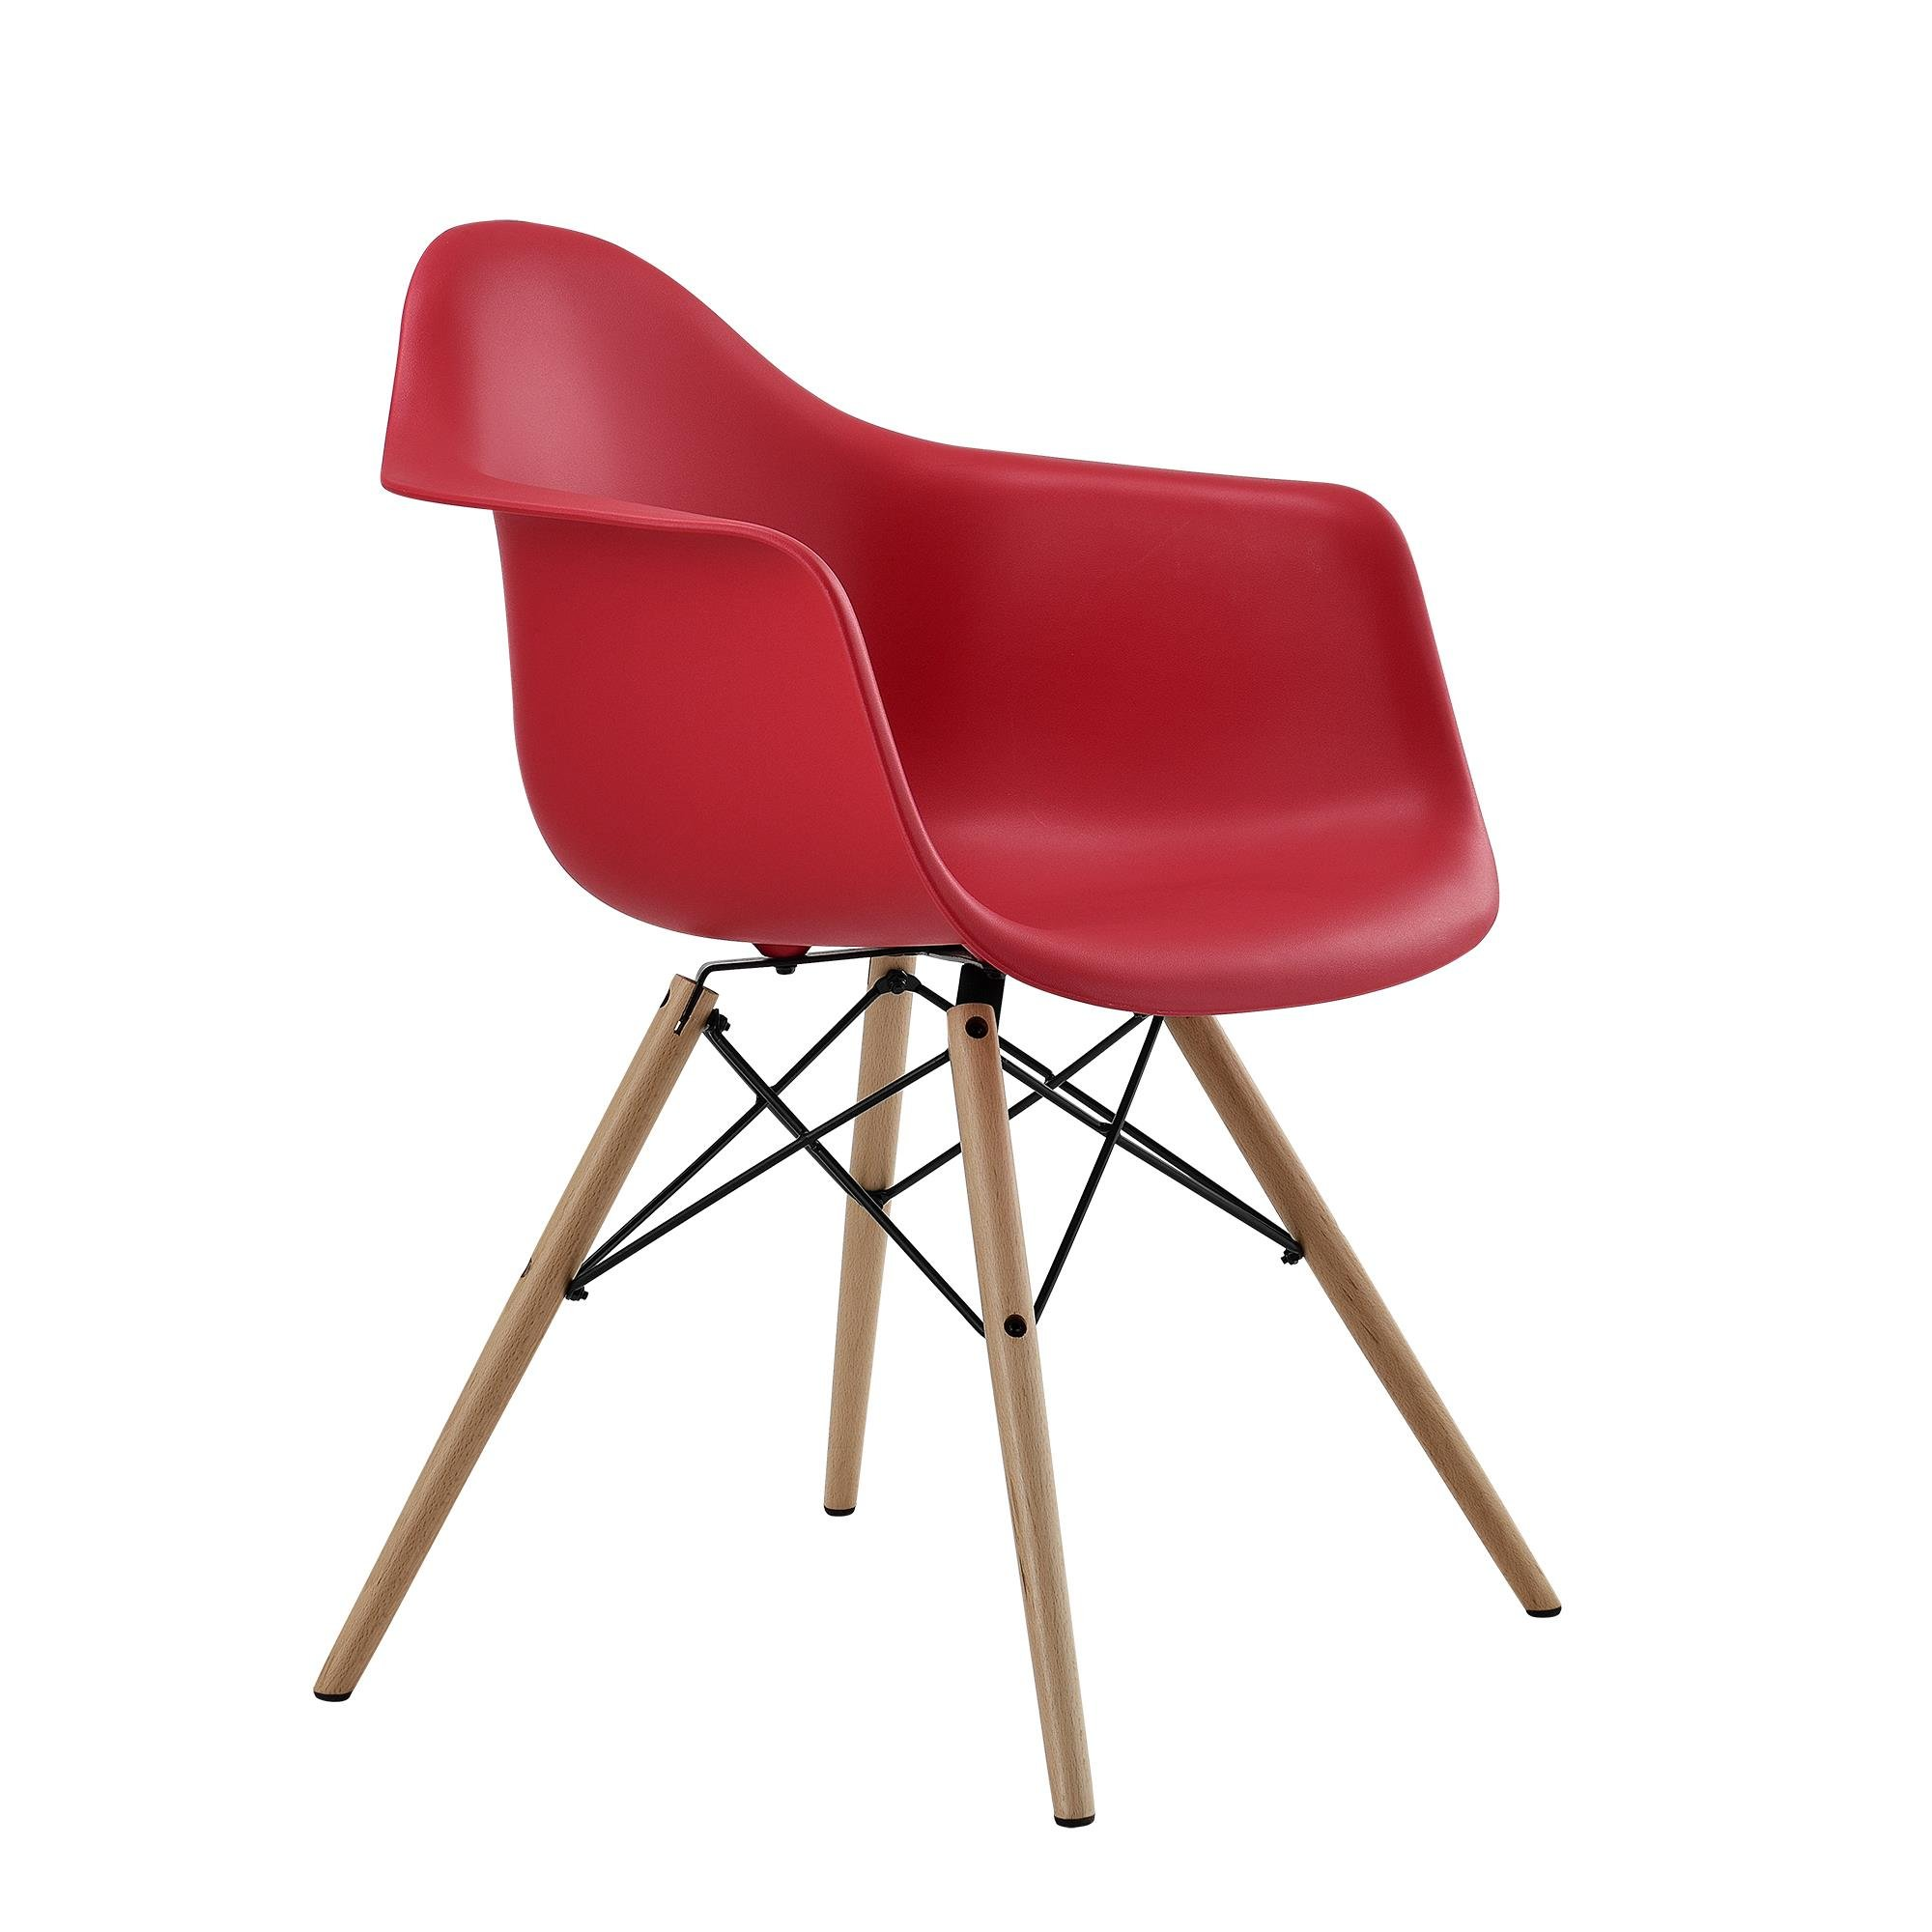 DHP Mid Century Modern Chair with Molded Arms and Wood Legs, Lightweight, Red